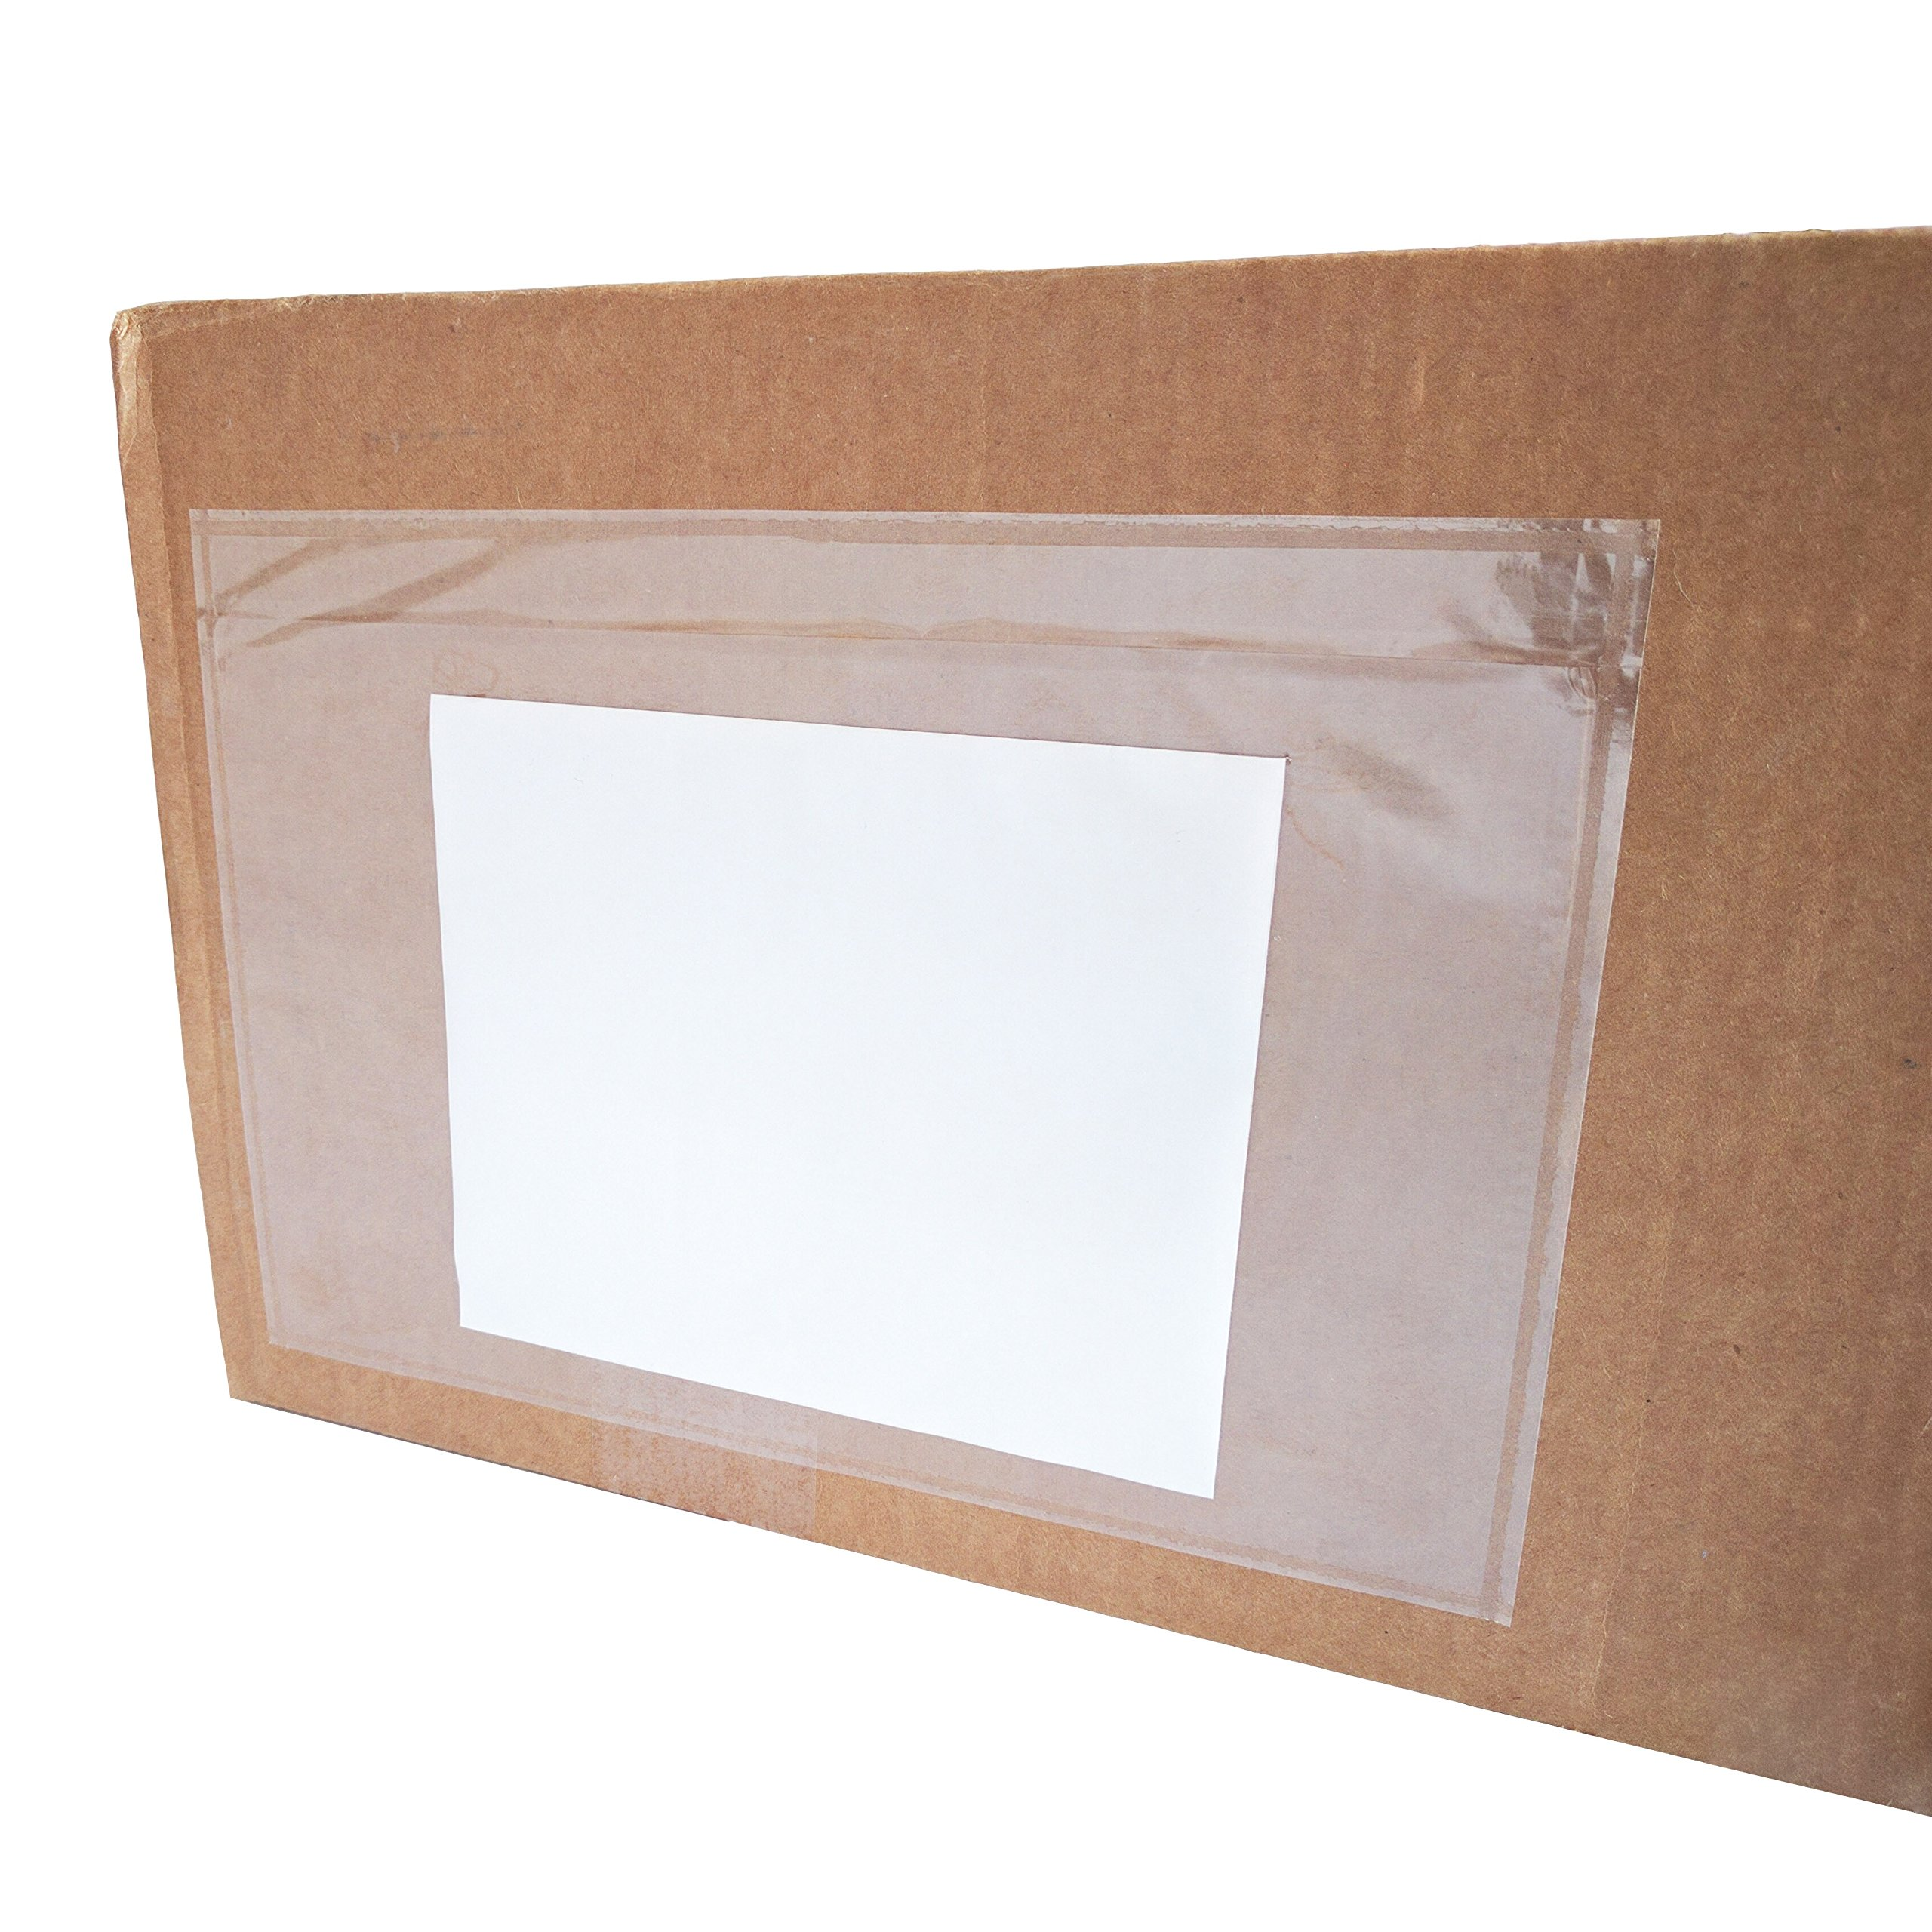 """6"""" x 9"""" Clear Plastic Self Adhesive Shipping Label / Packing Slip Envelope Pouches (100 pcs)"""